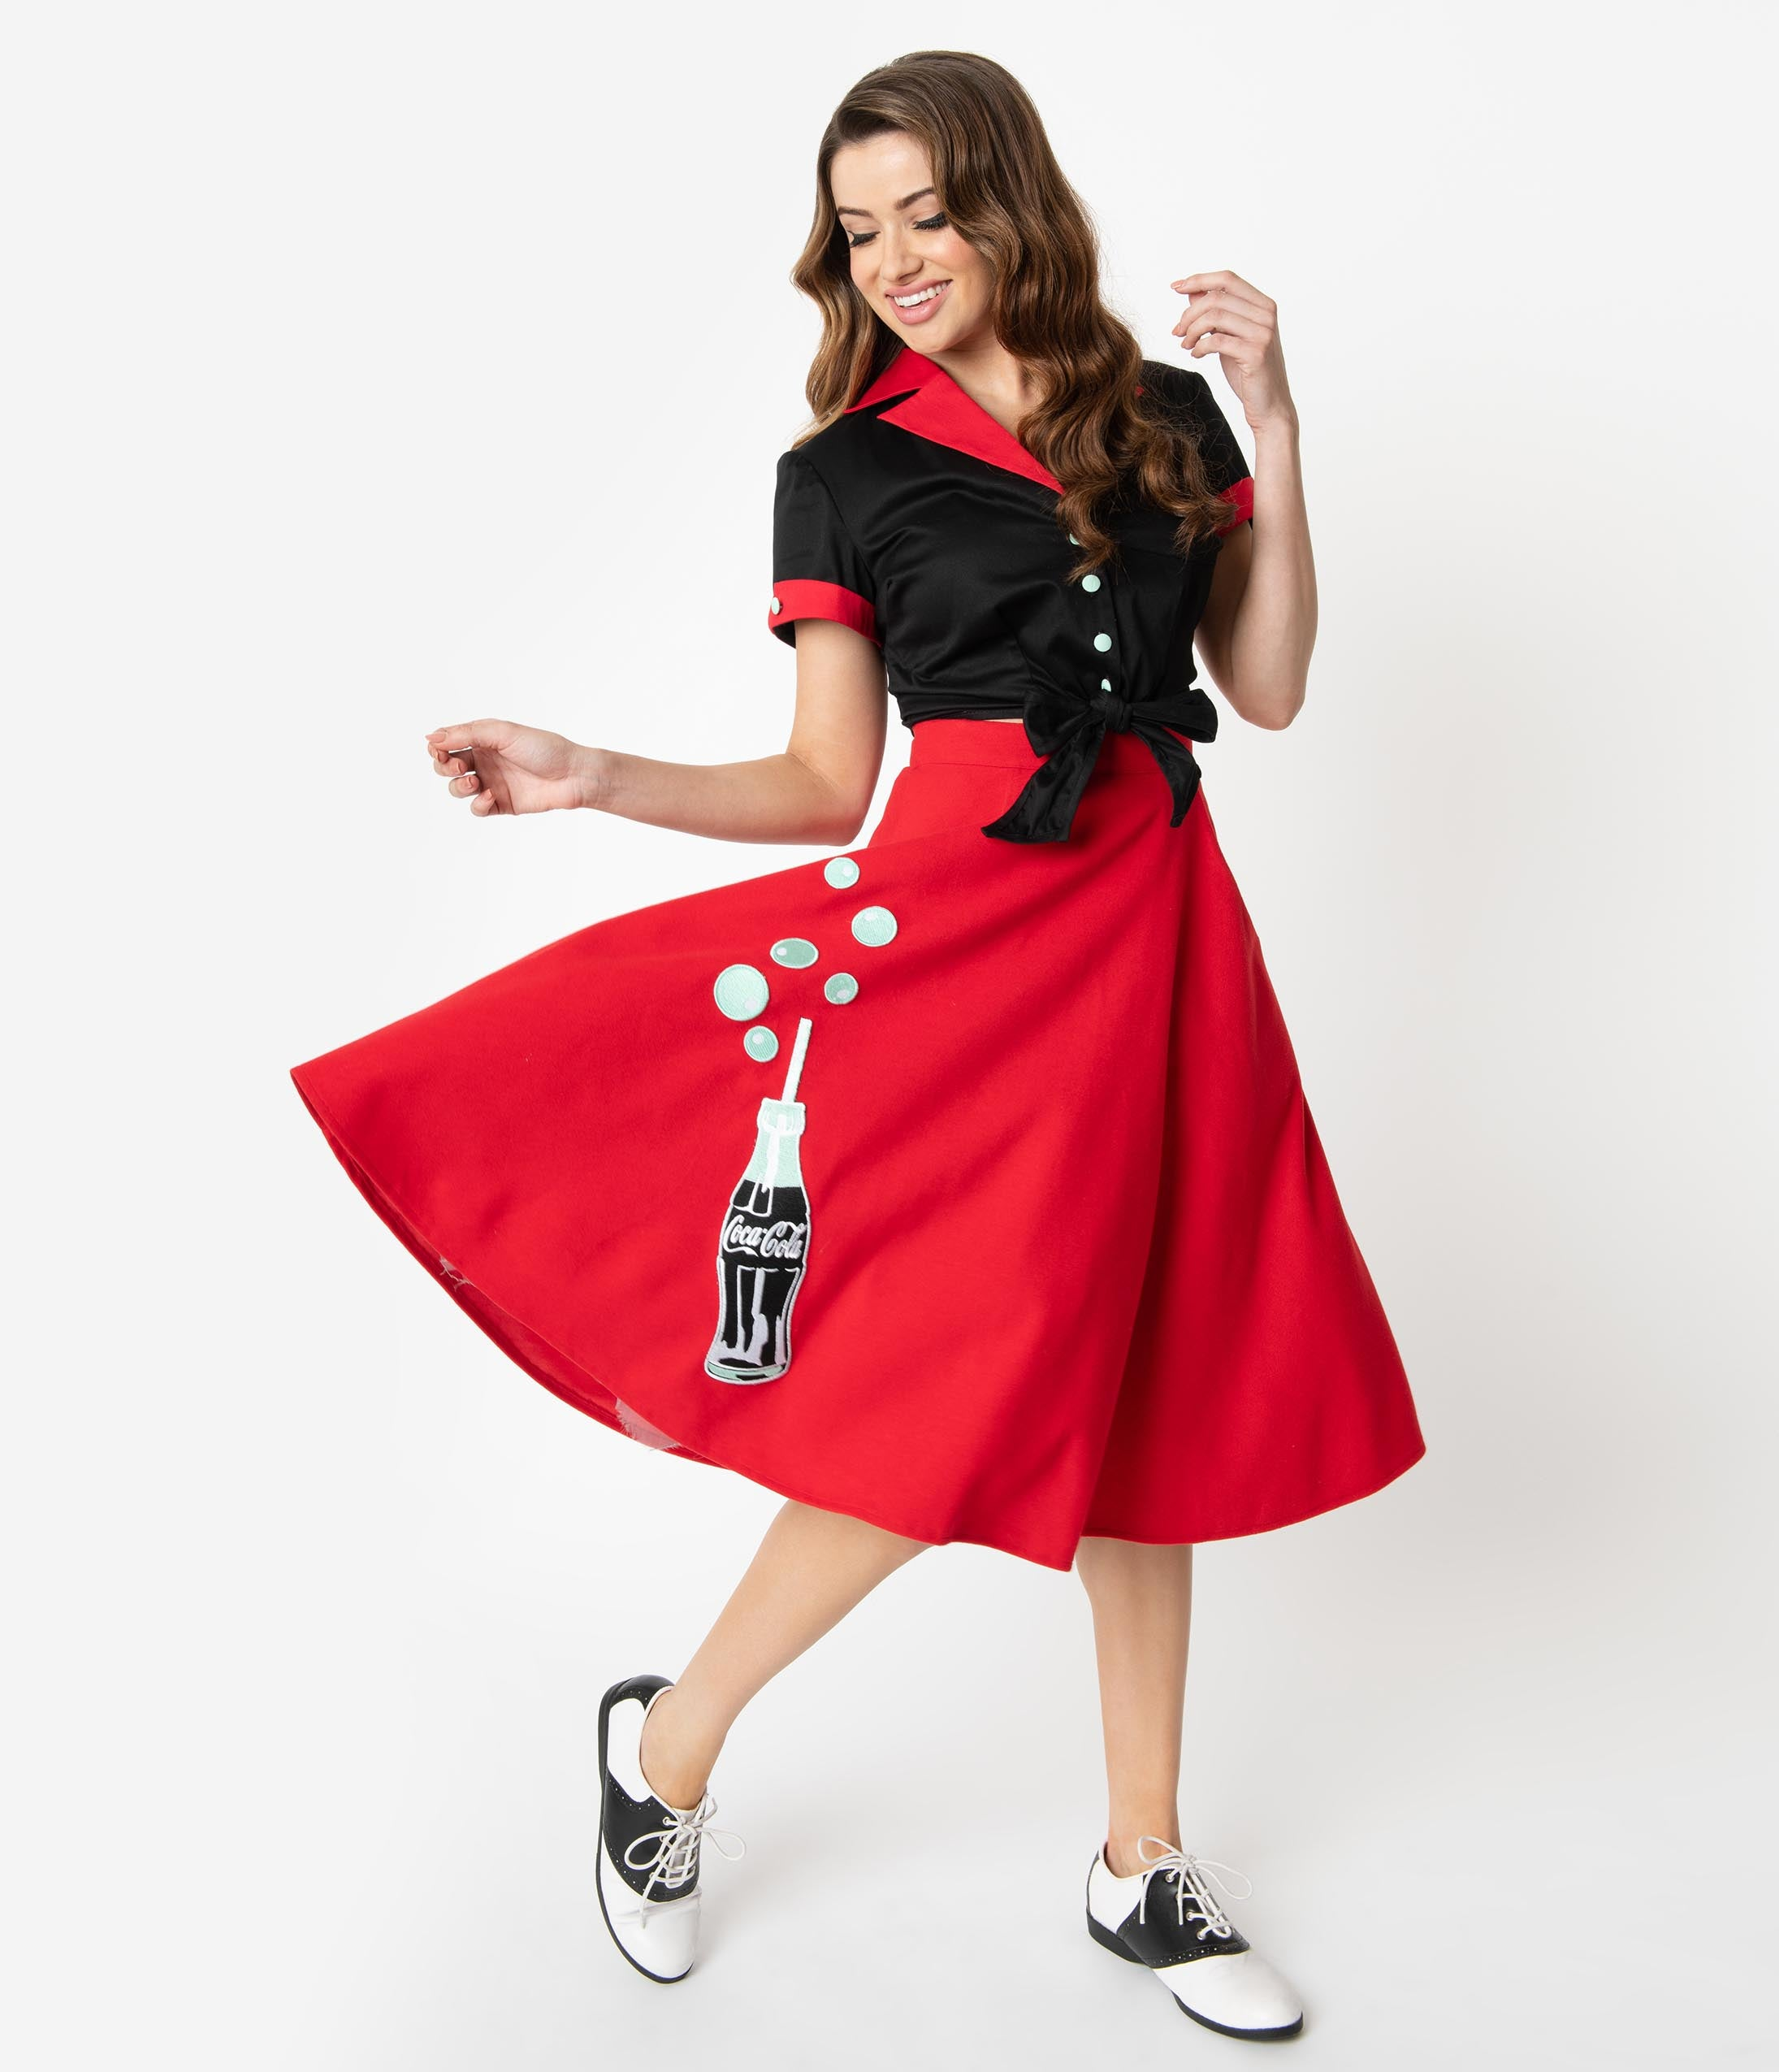 1950s Costumes- Poodle Skirts, Grease, Monroe, Pin Up, I Love Lucy Coca-Cola Collection By Unique Vintage 1950S Red Cola Bottle Bubbly Swing Skirt $78.00 AT vintagedancer.com